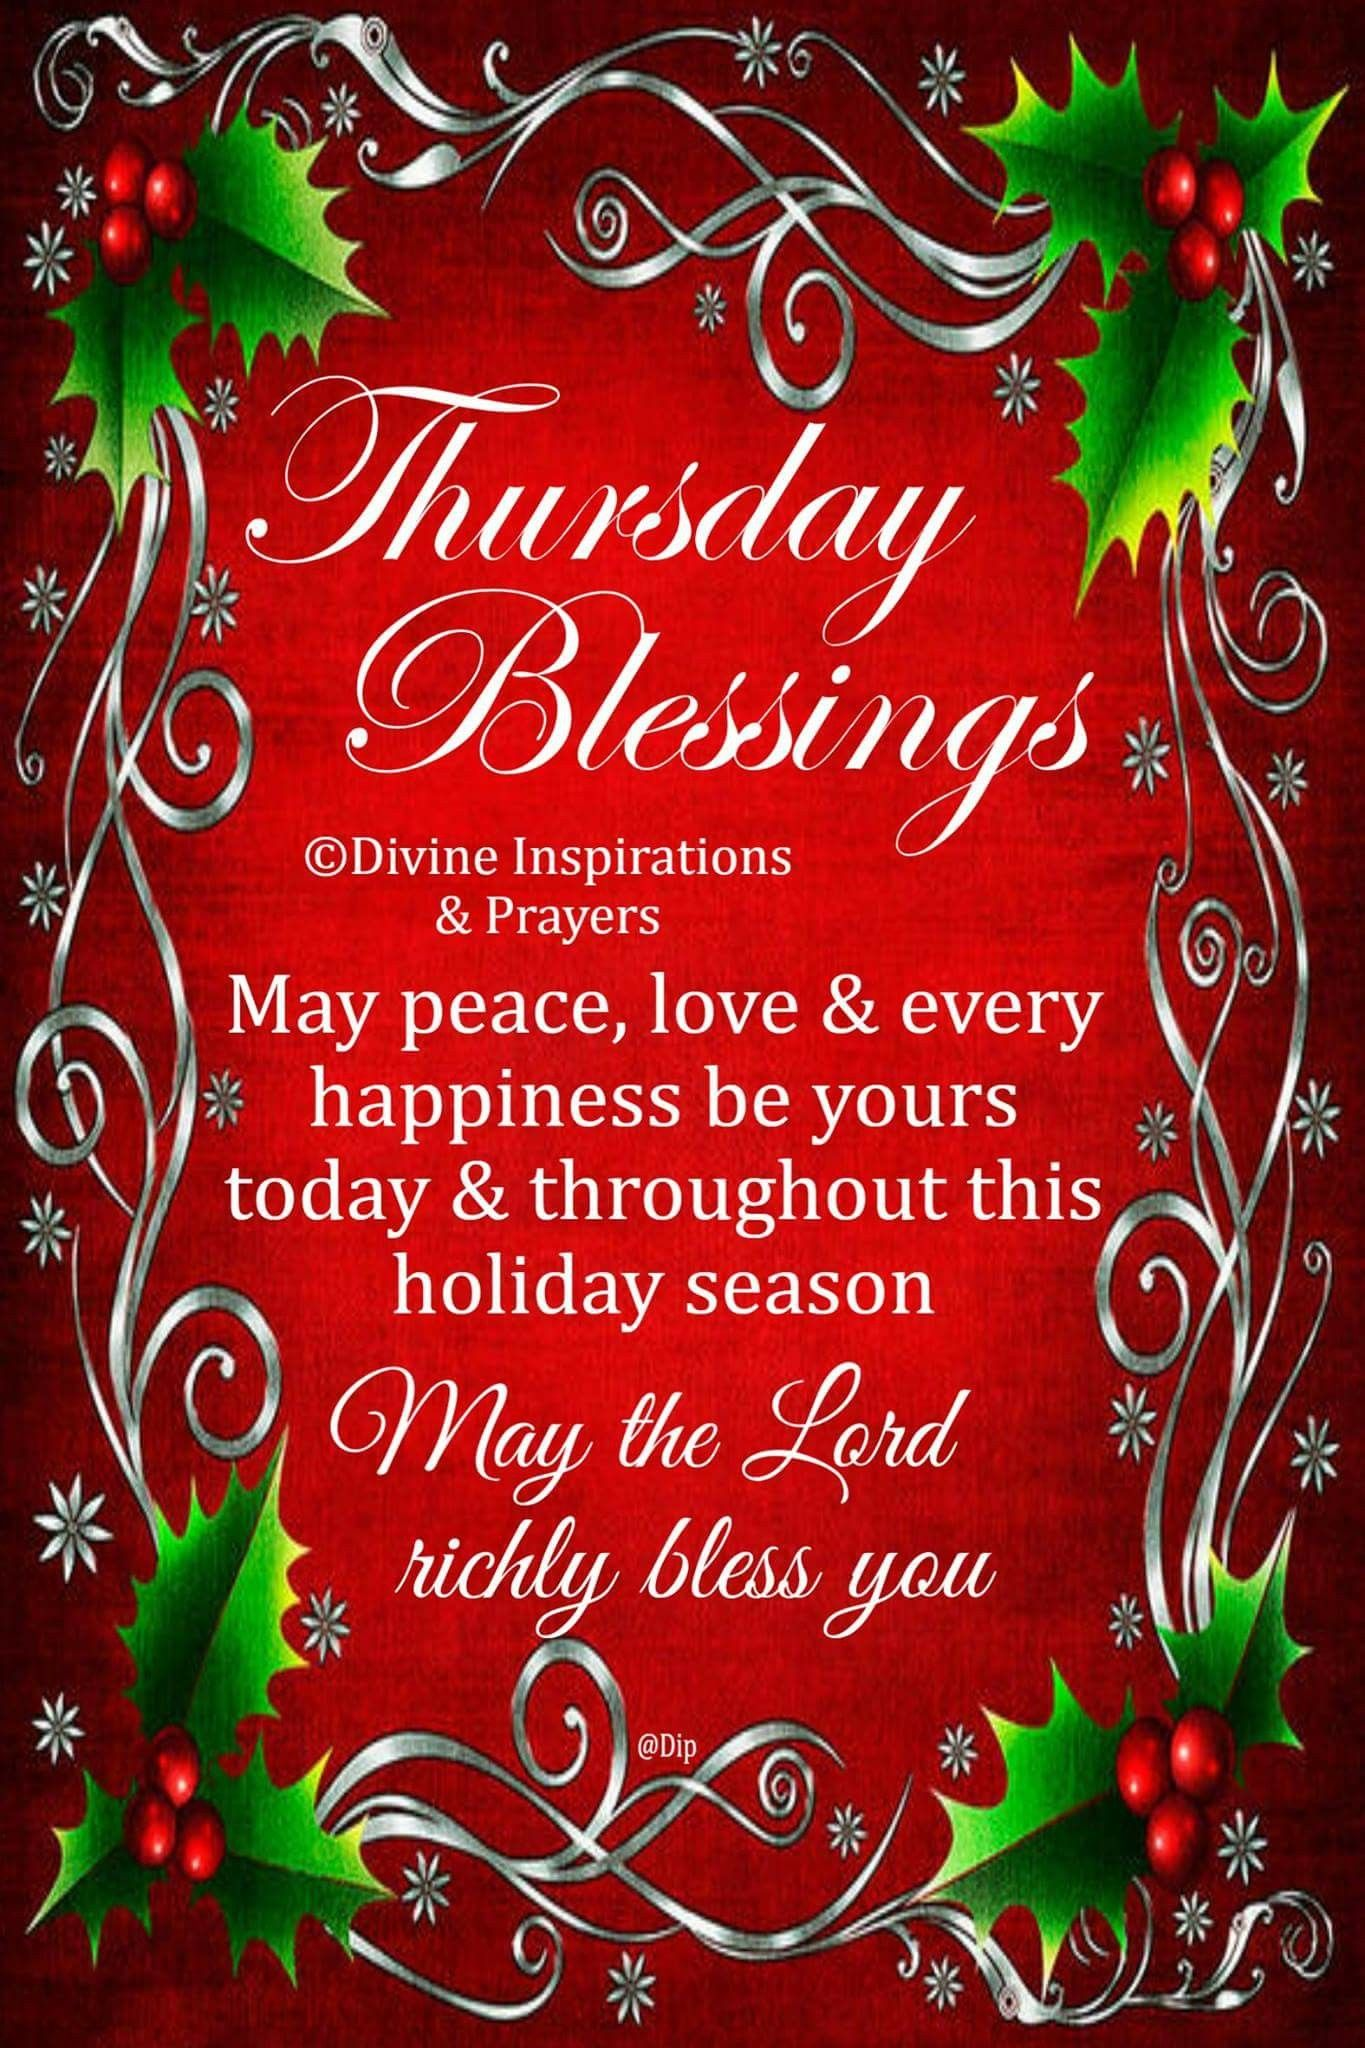 Thursday New Year Blessings Greetings Catds Pinterest Thursday